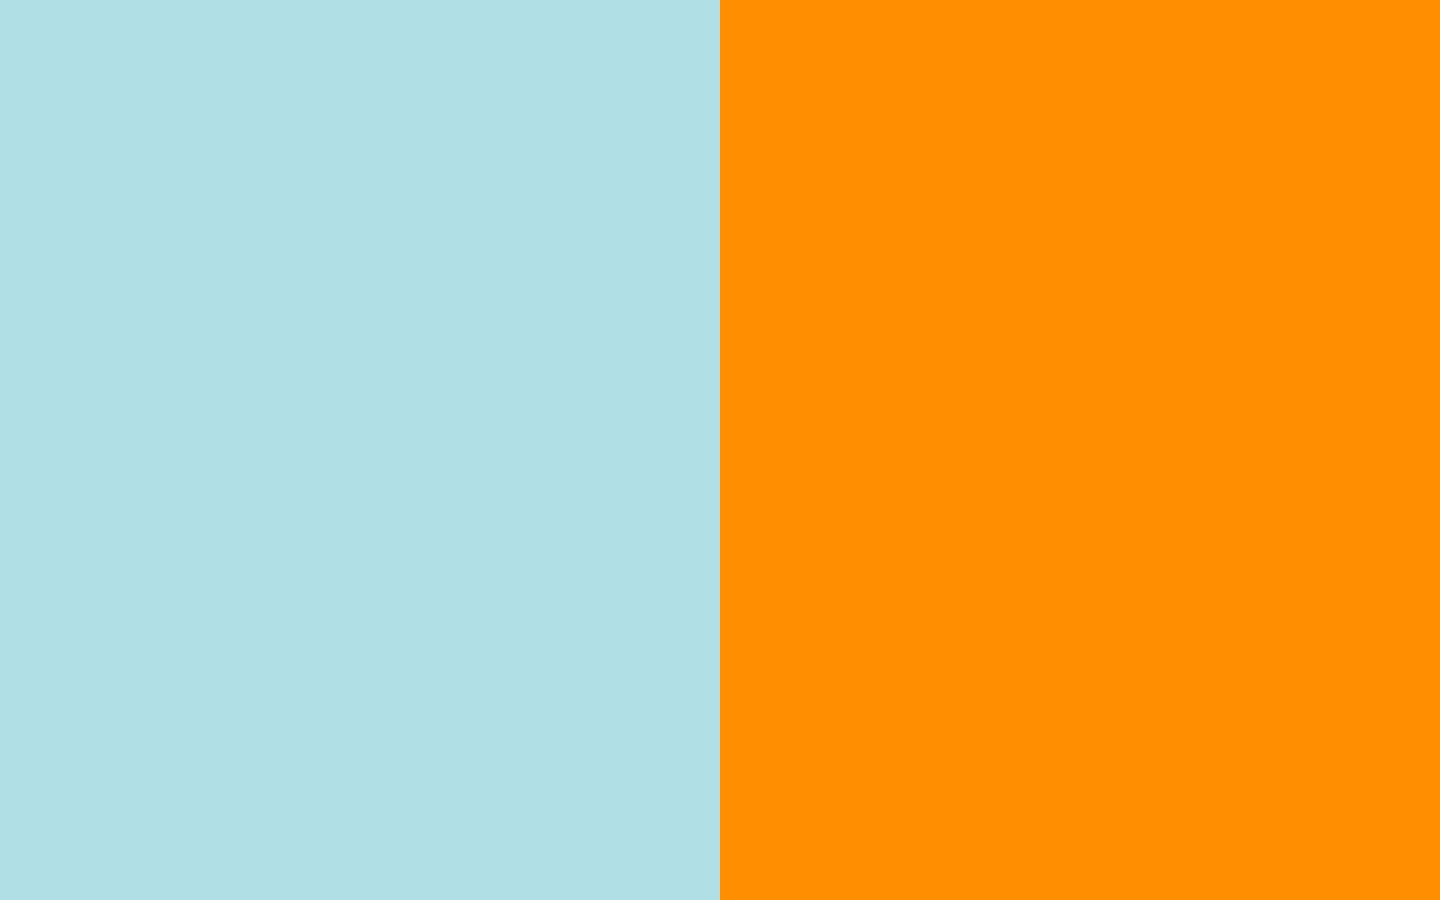 resolution Powder Blue Web and Princeton Orange solid two color 1440x900